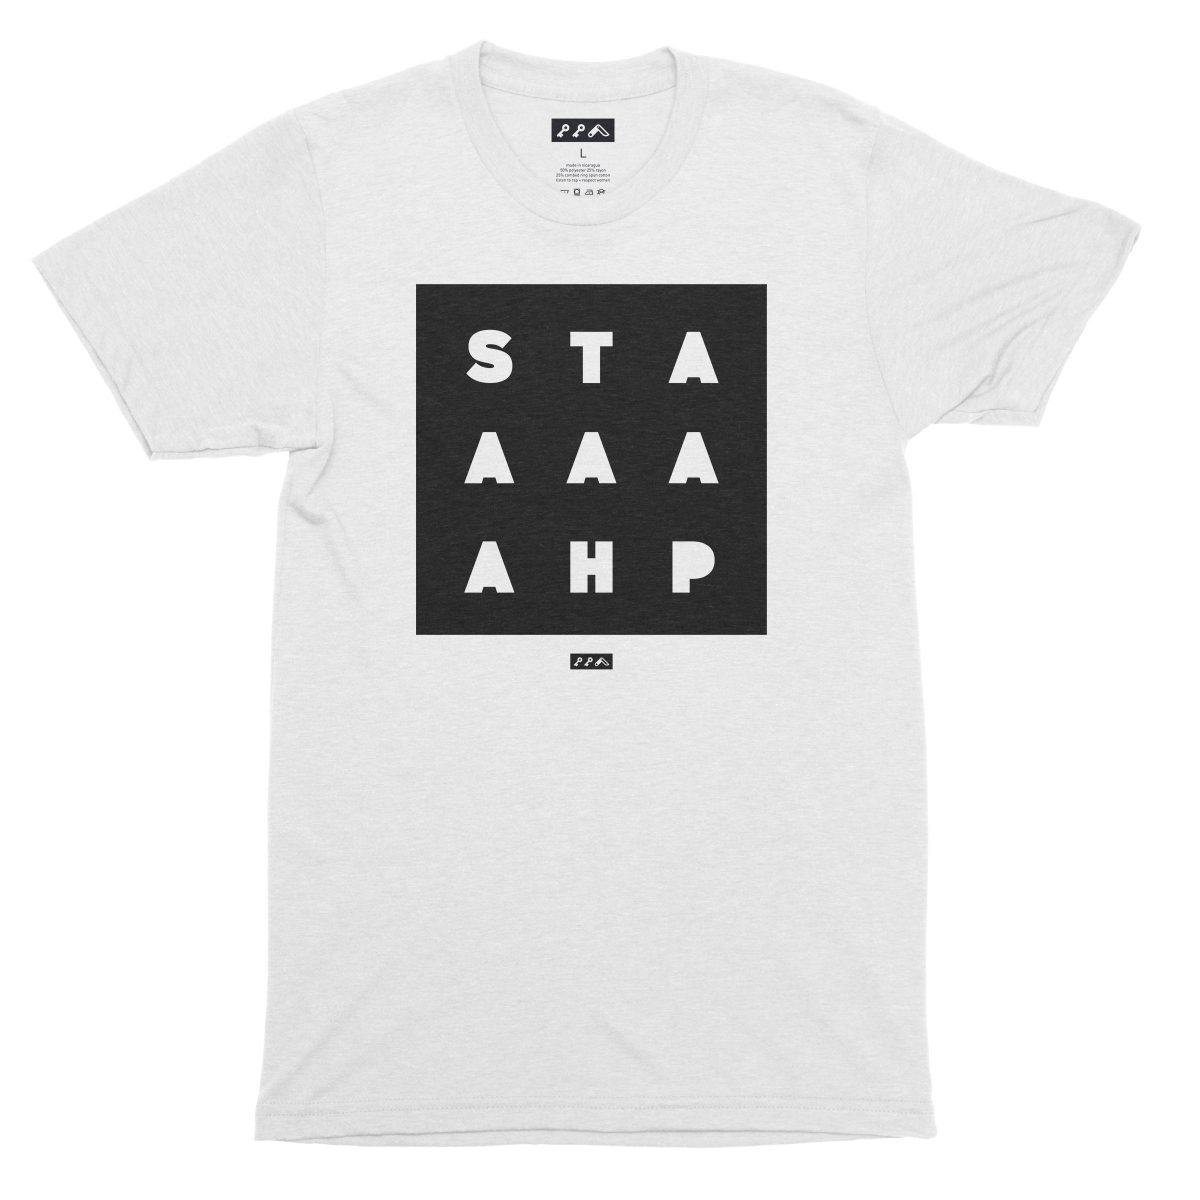 """""""STAAAAAHP"""" funny jersey slang unisex t-shirt in white"""